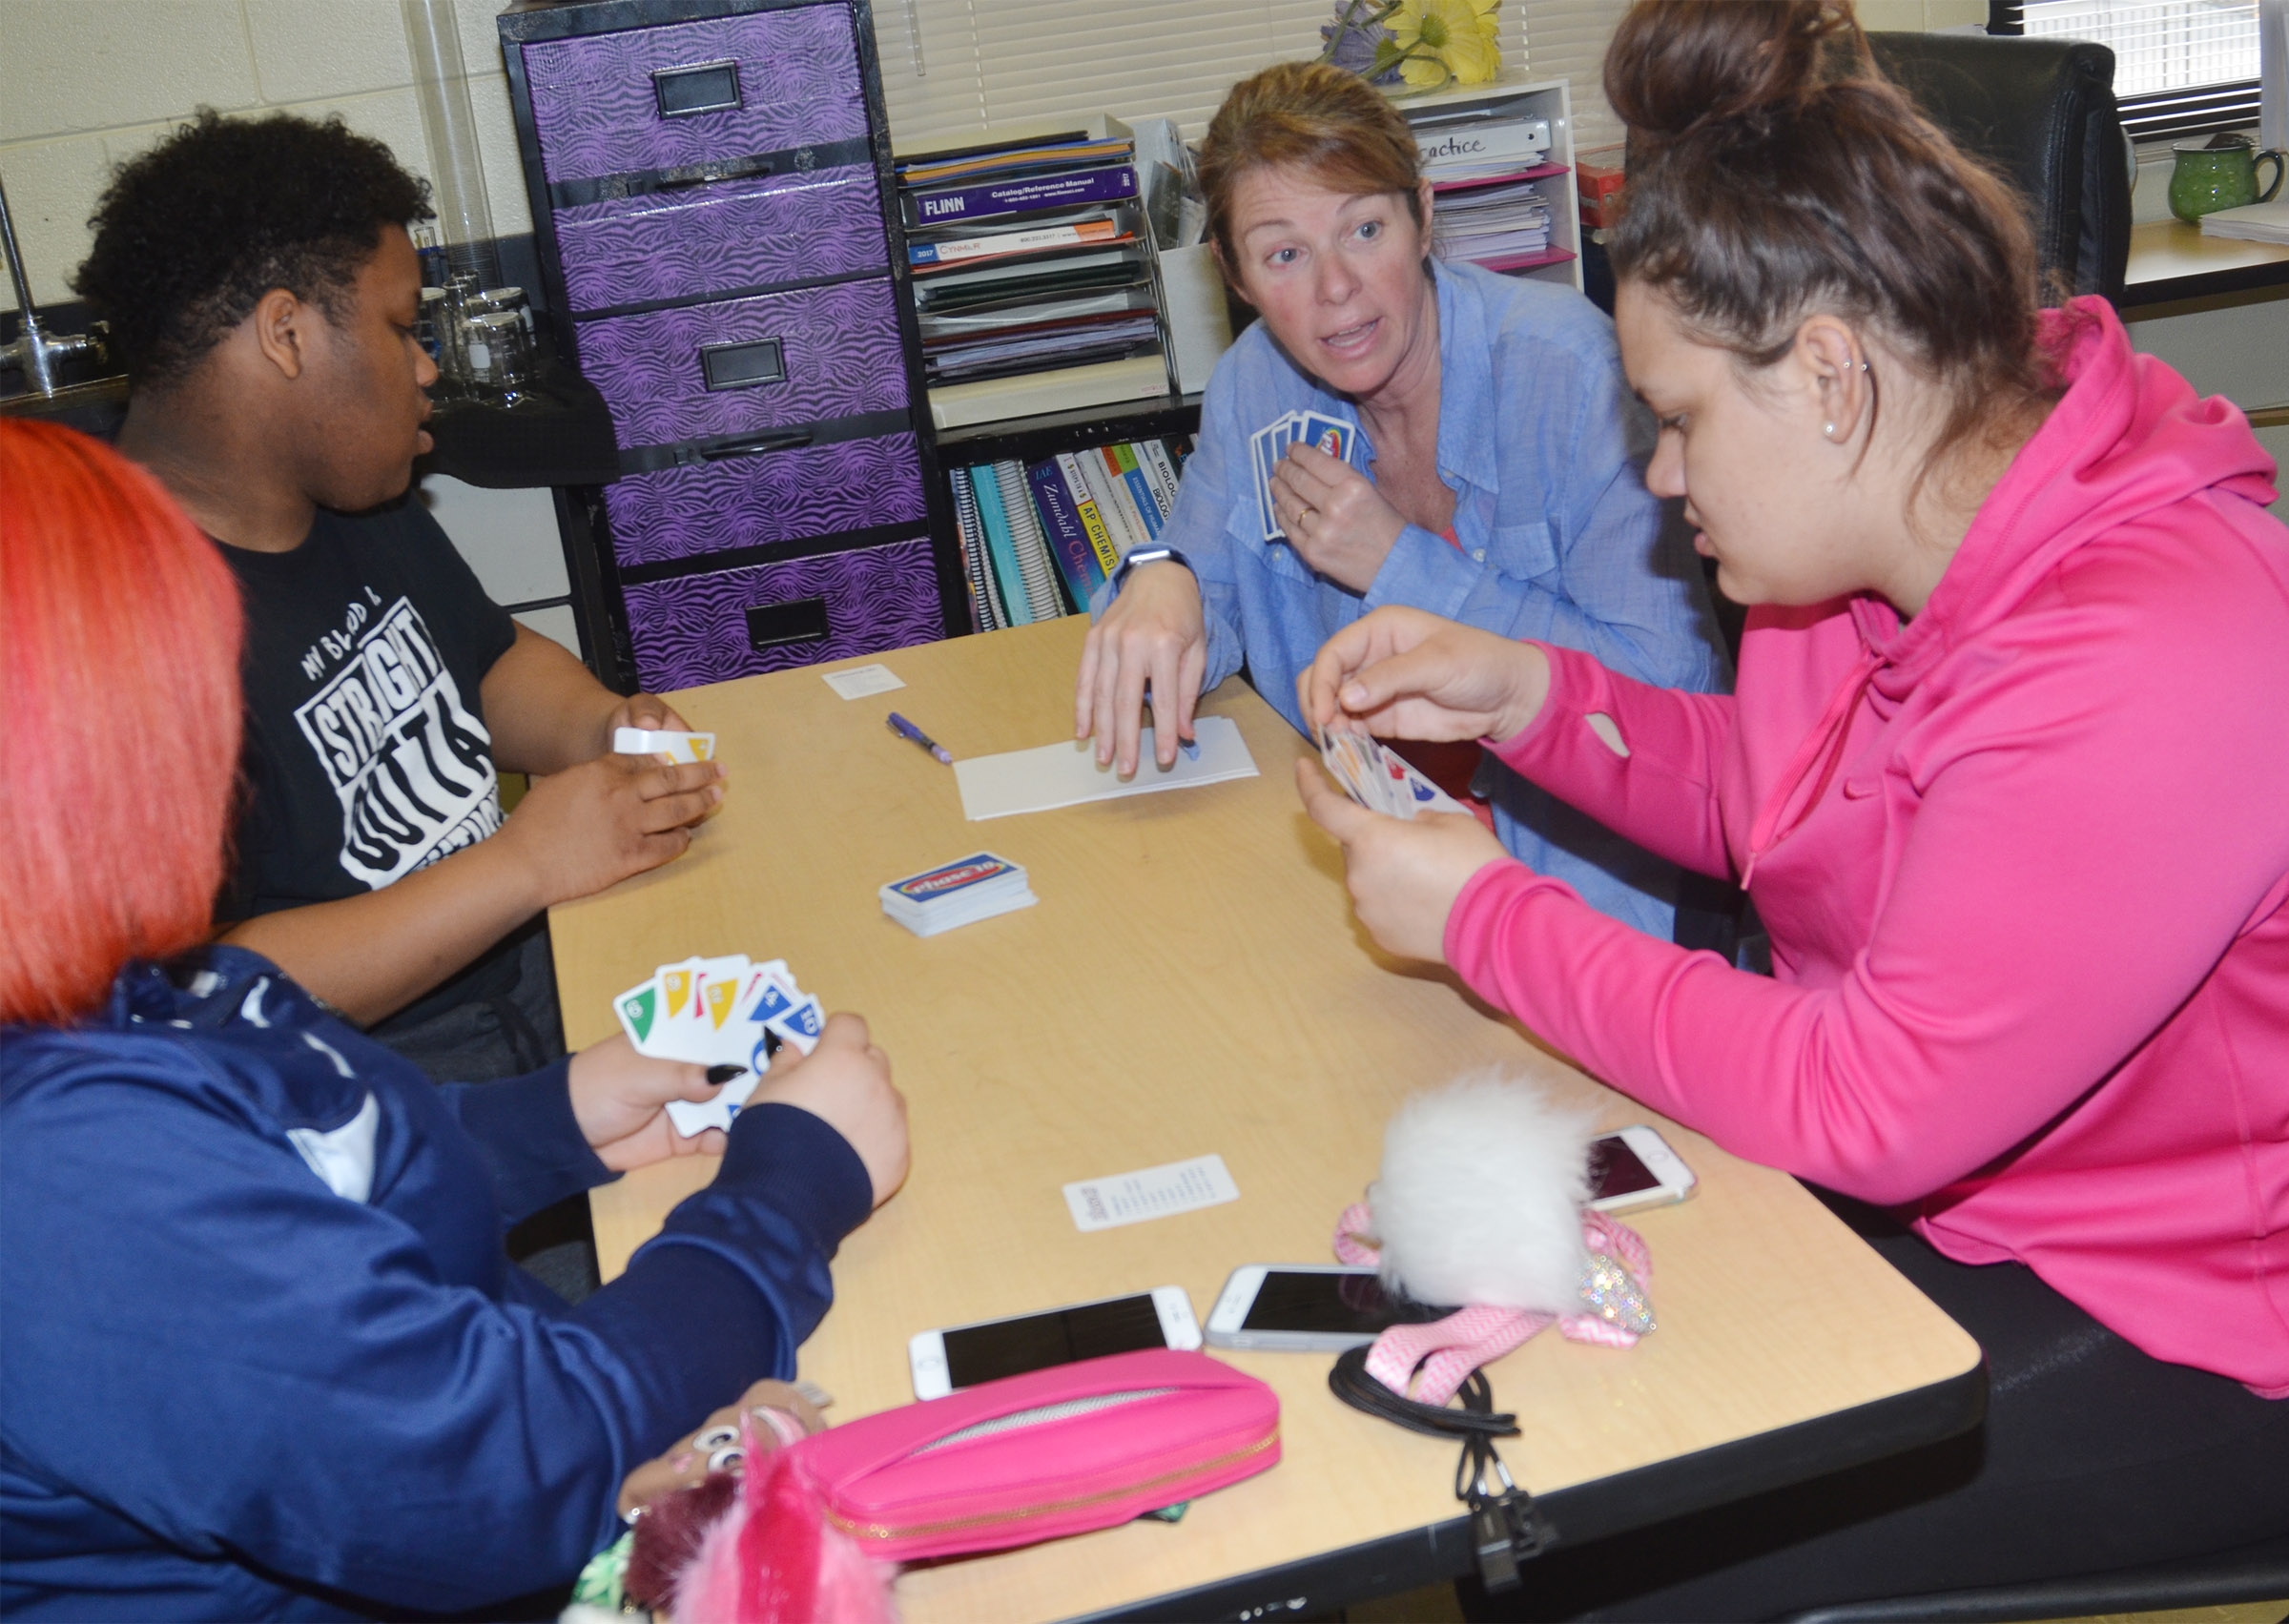 CHS teacher Dee Doss plays Phase 10 with juniors Darius Wright, at left, and Jayden Bridgewater.